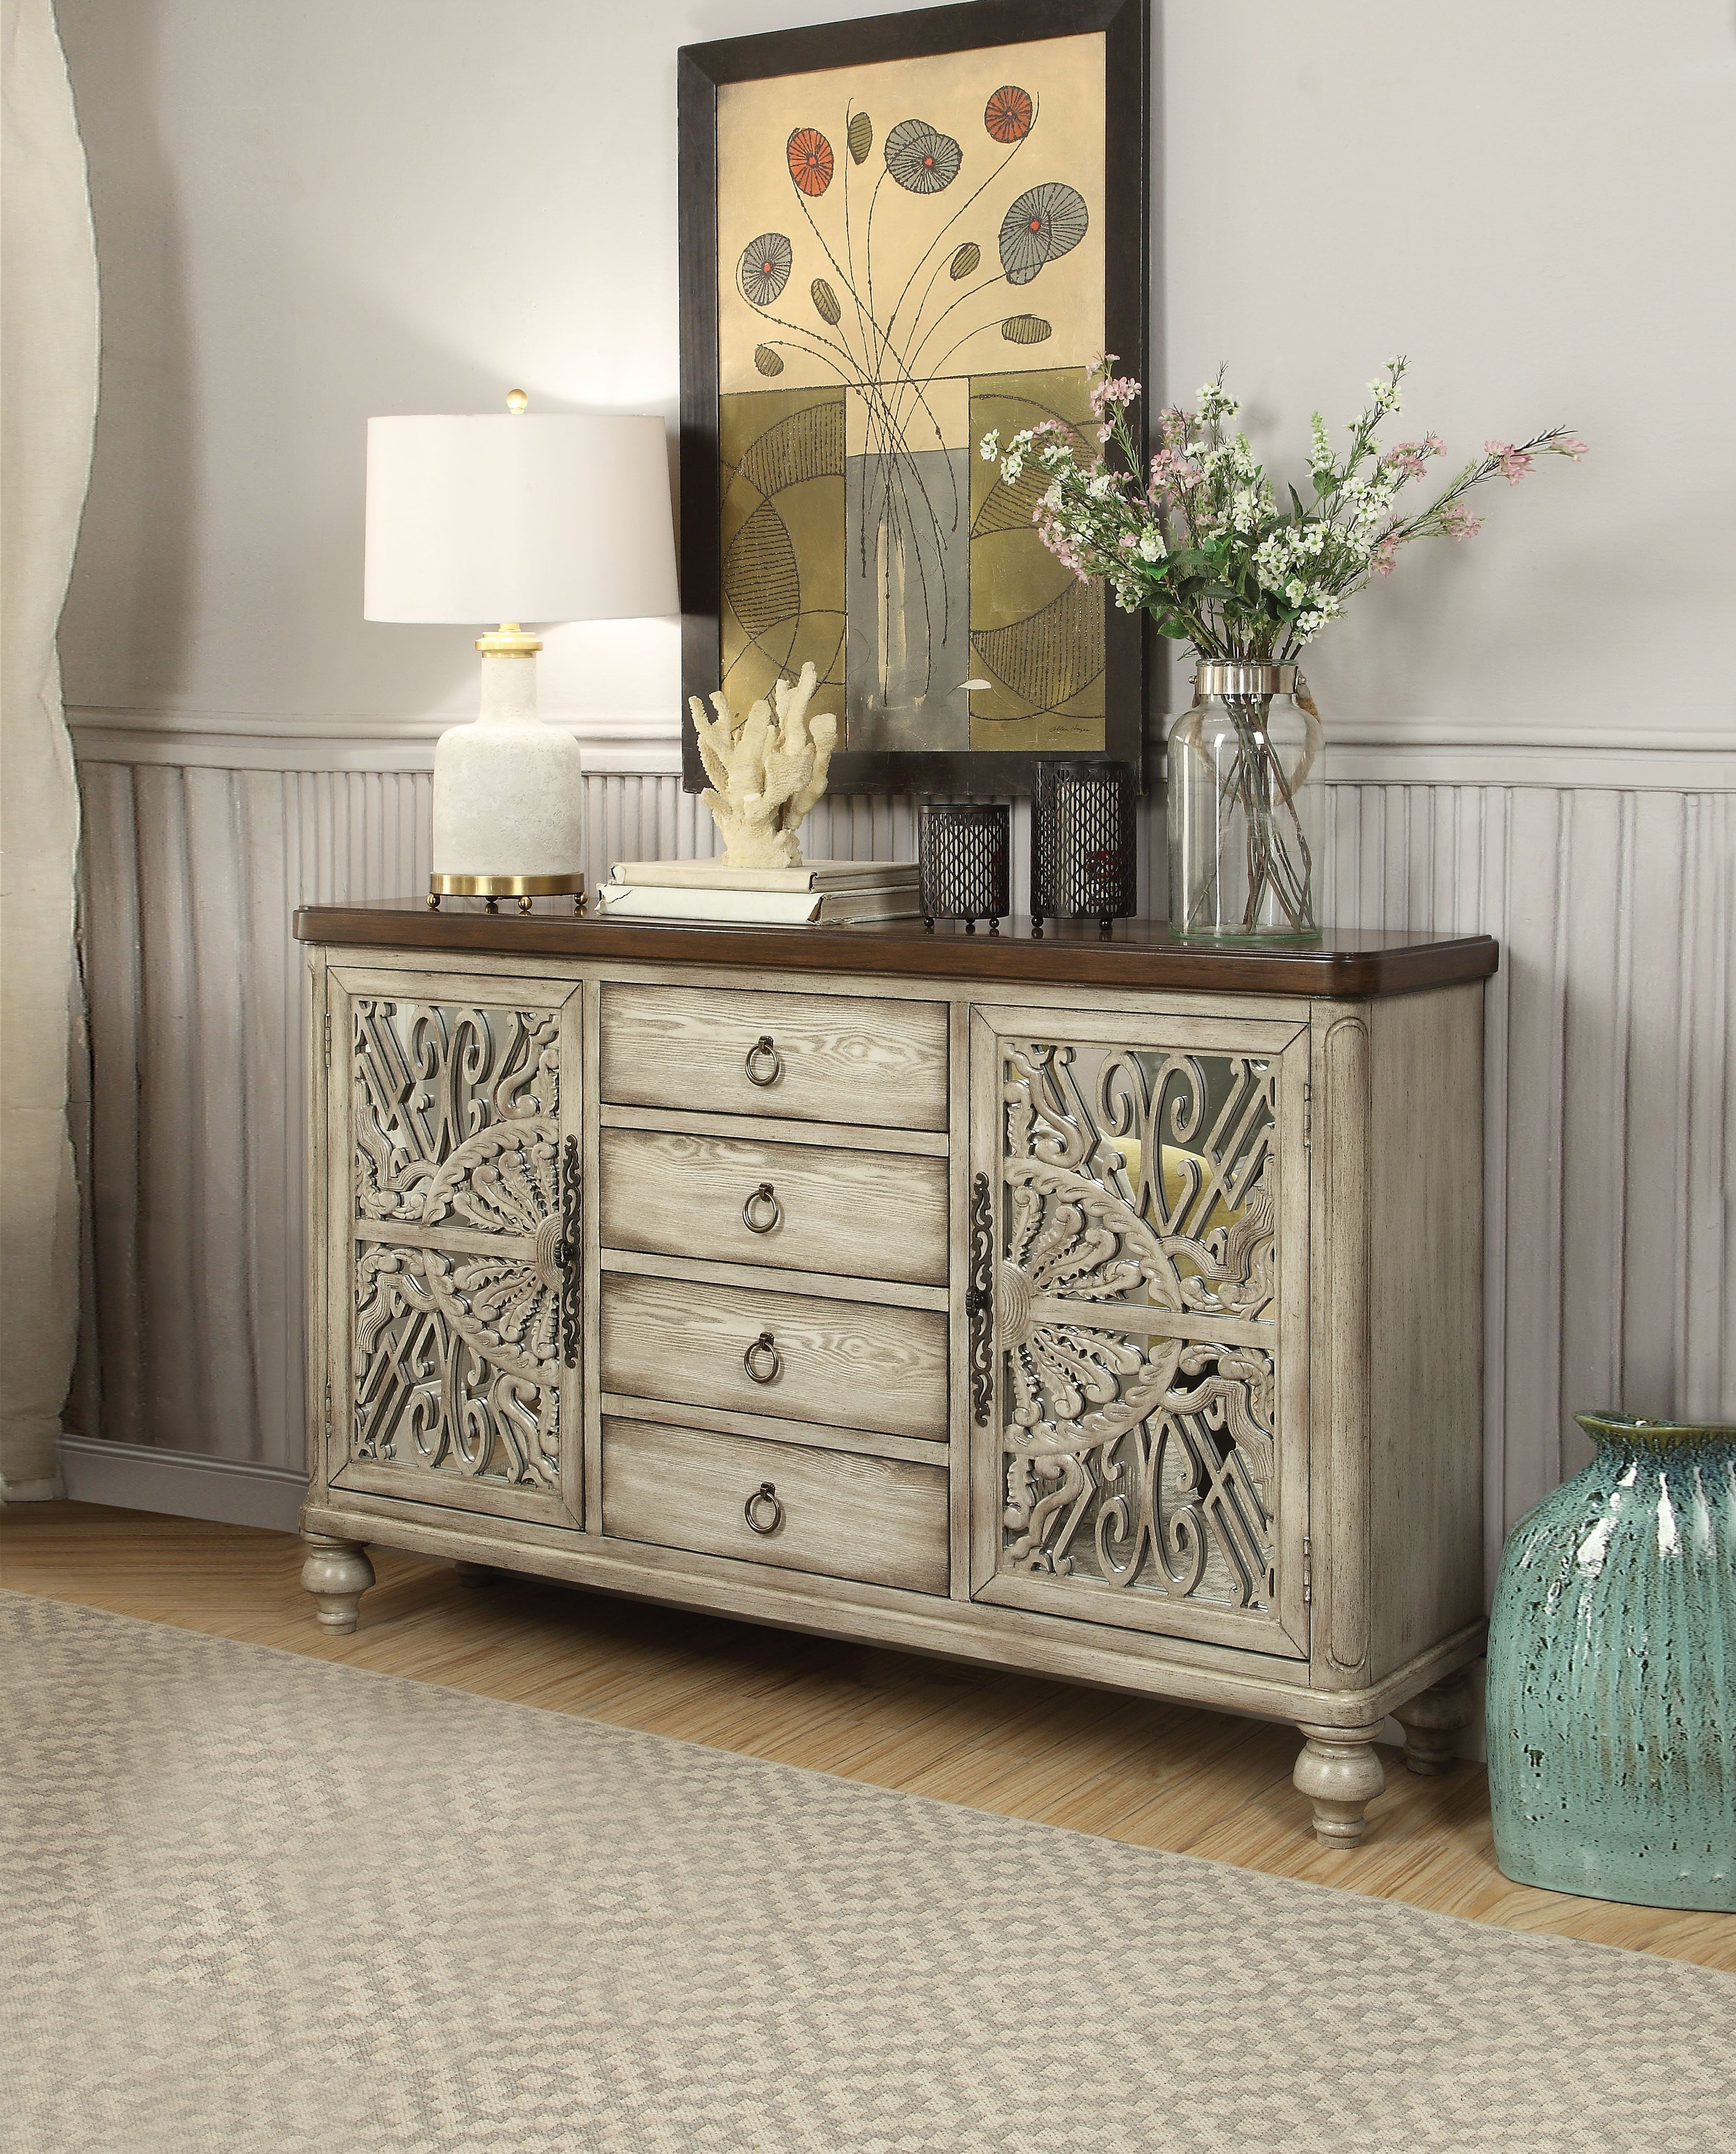 Vermont Console Table 2 Doors And 4 Drawers, Antique White